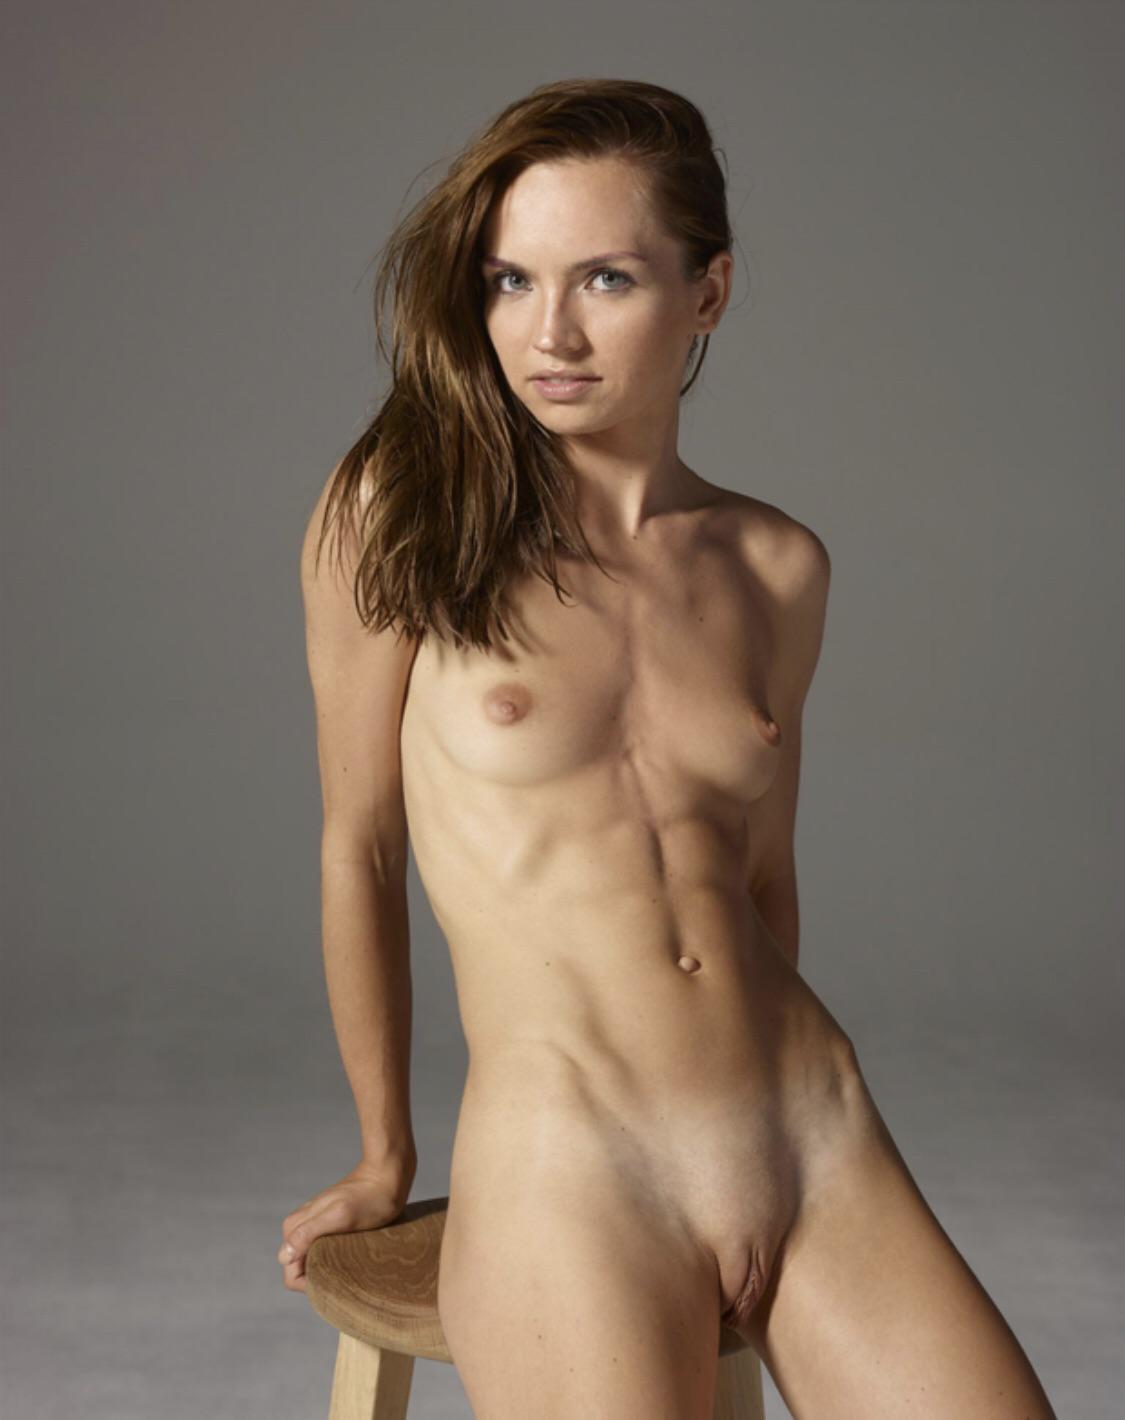 Fit, Naked And Beautiful.